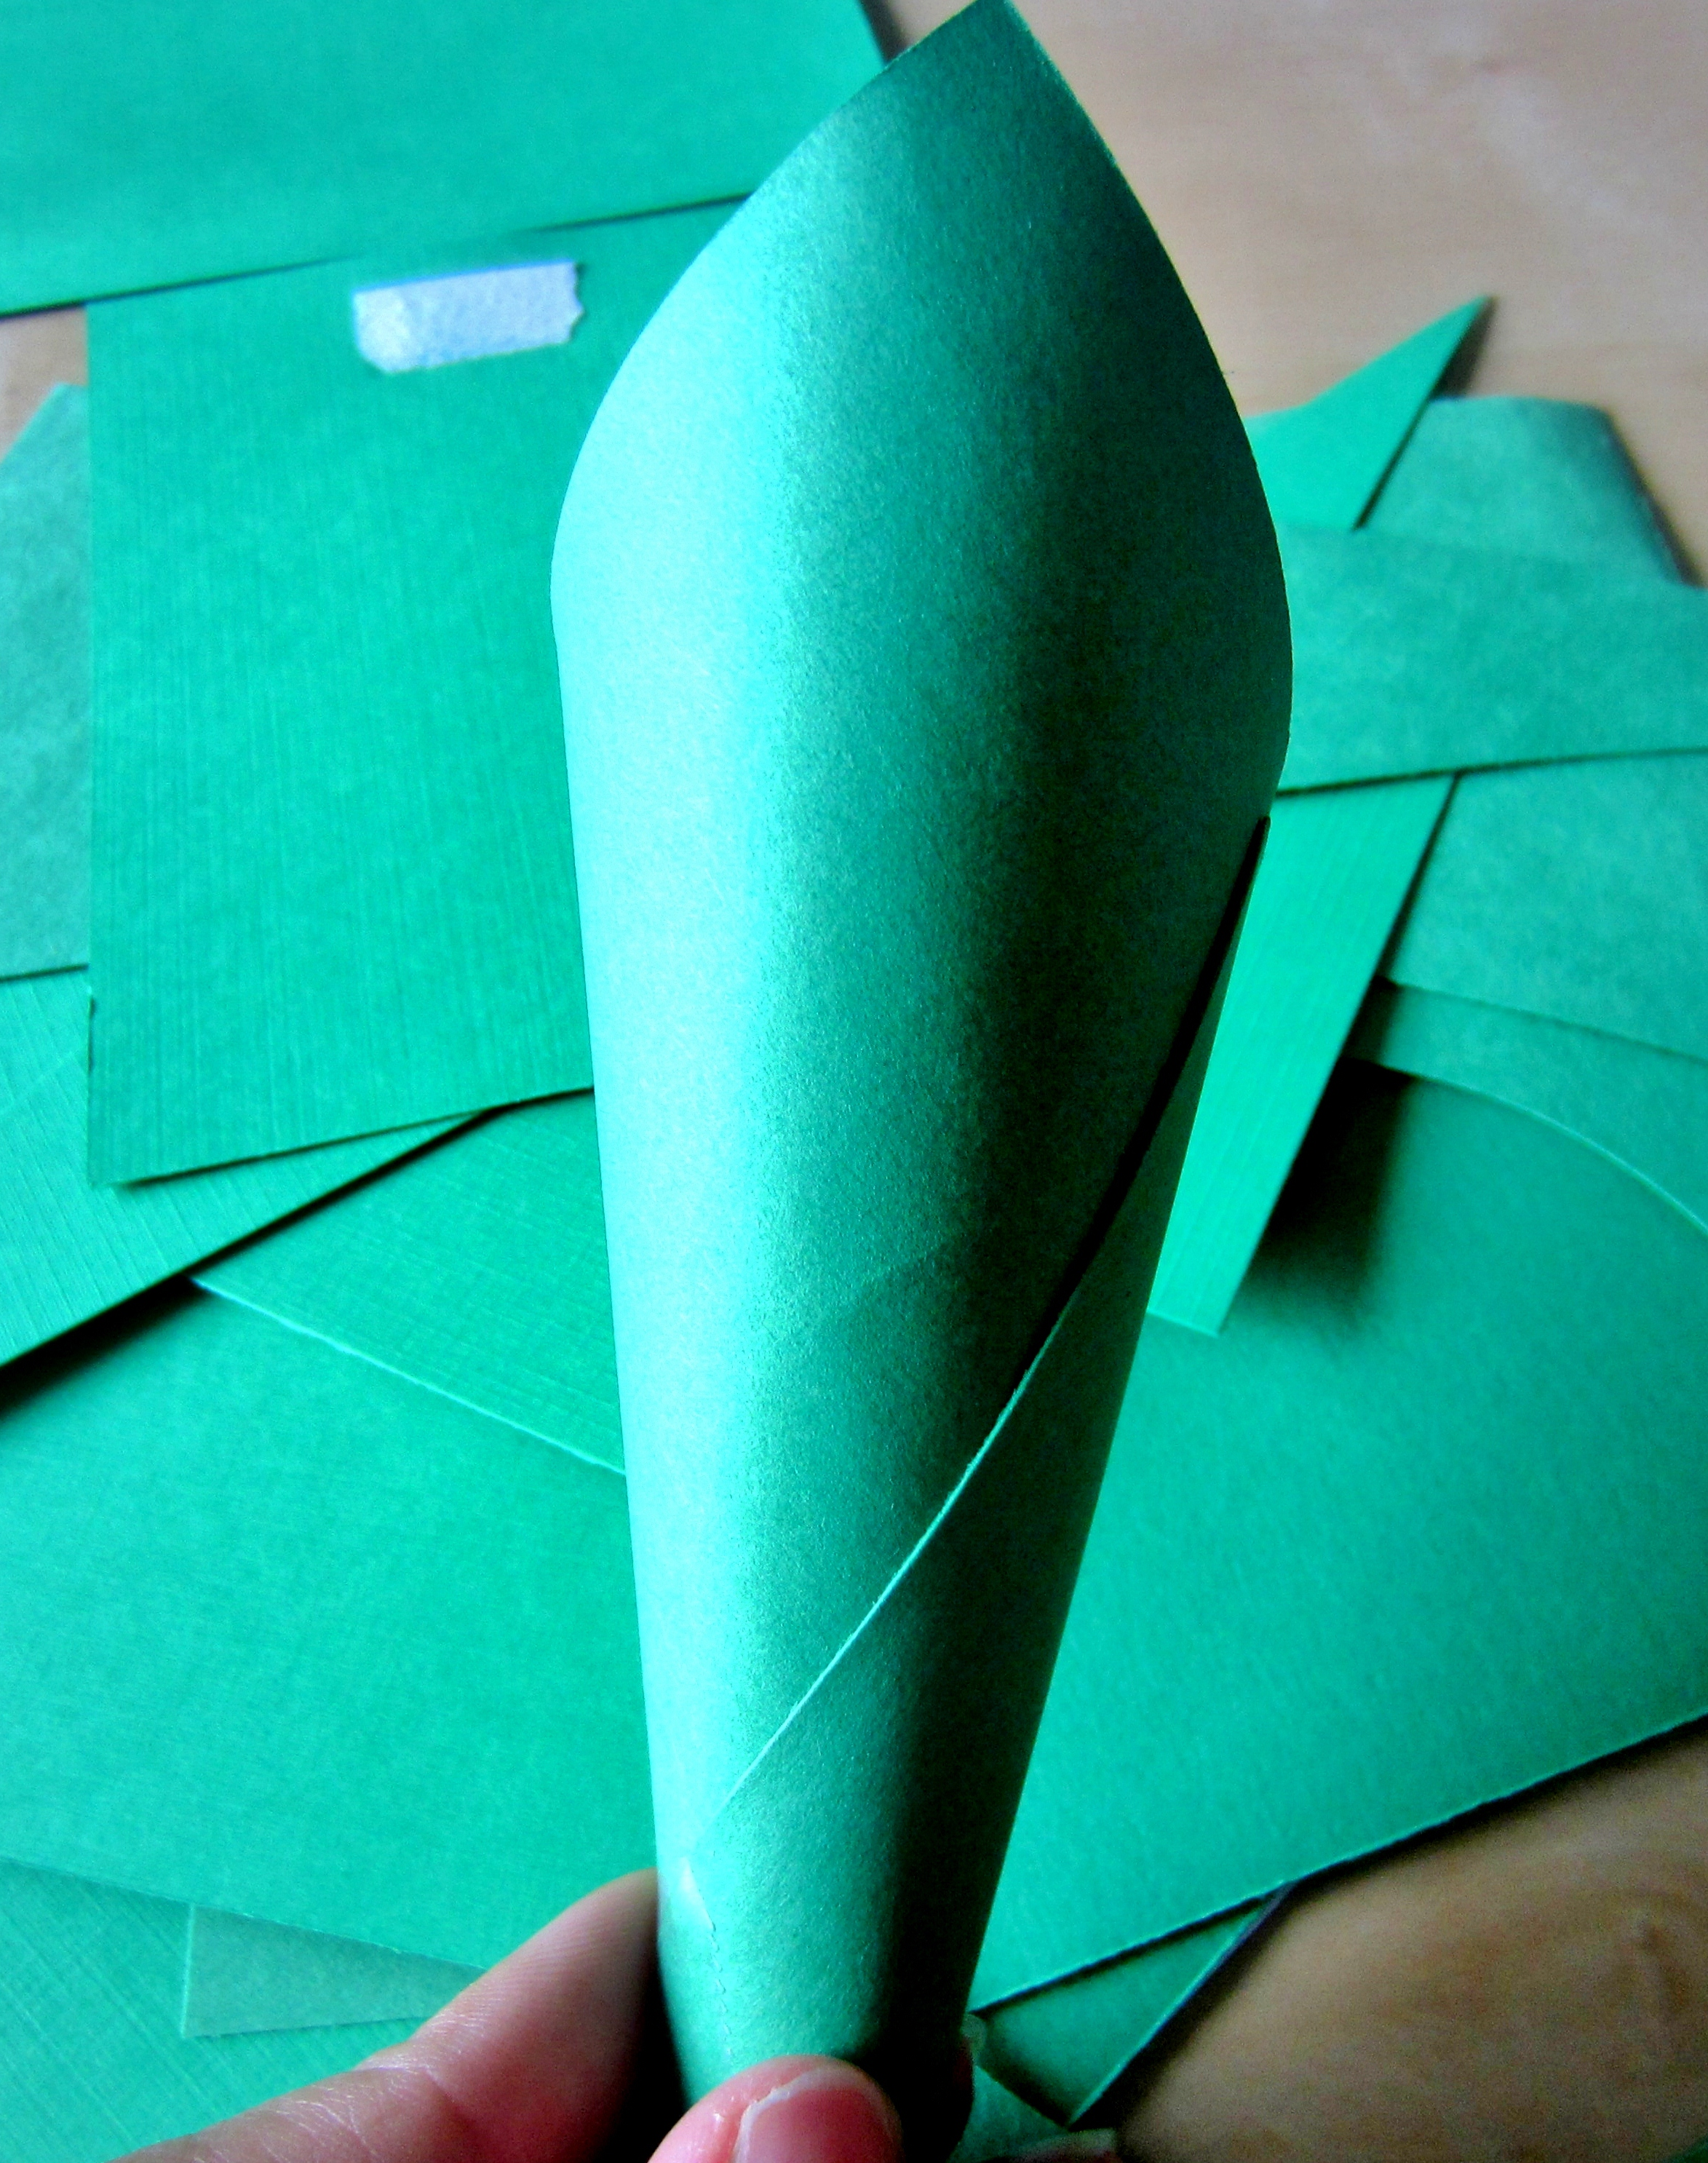 How to make scrapbook using recycled materials - Cut Out Several Triangles In Varying Lengths And Sizes